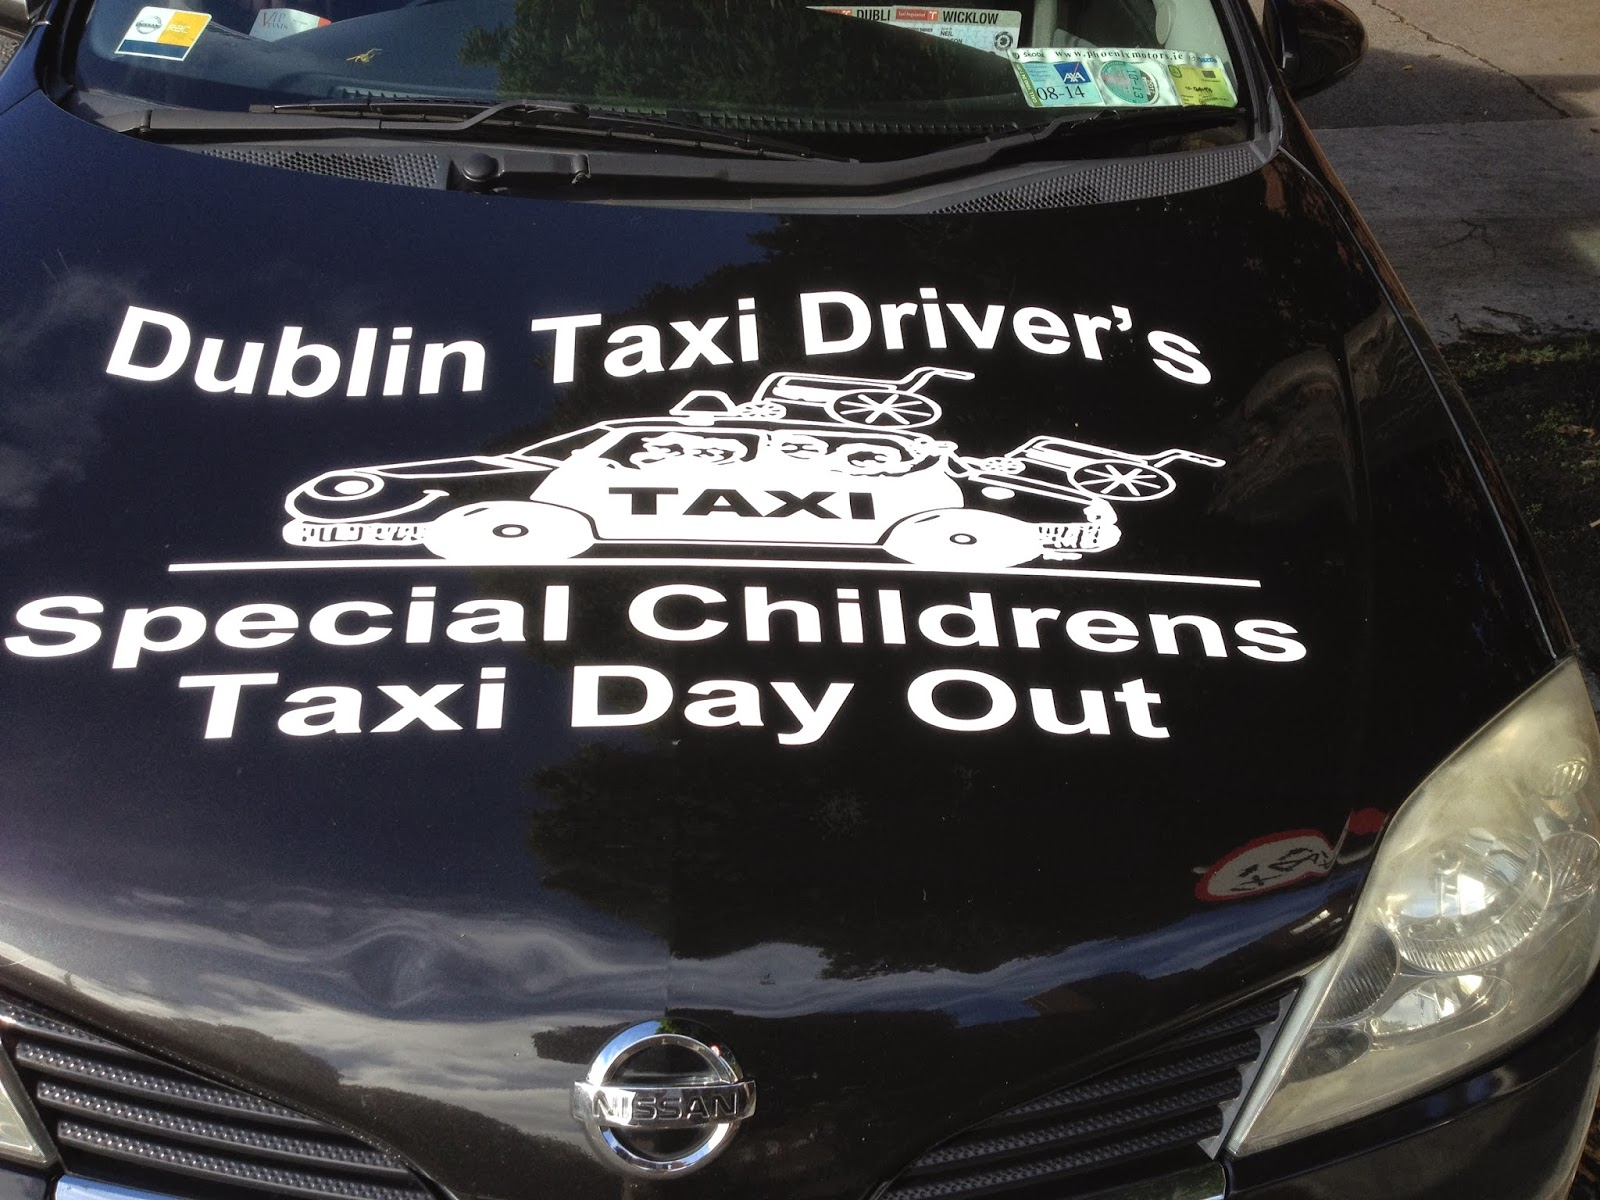 Remember the big day out get your name down now. & Dublin taxi: Tidy up time azcodes.com